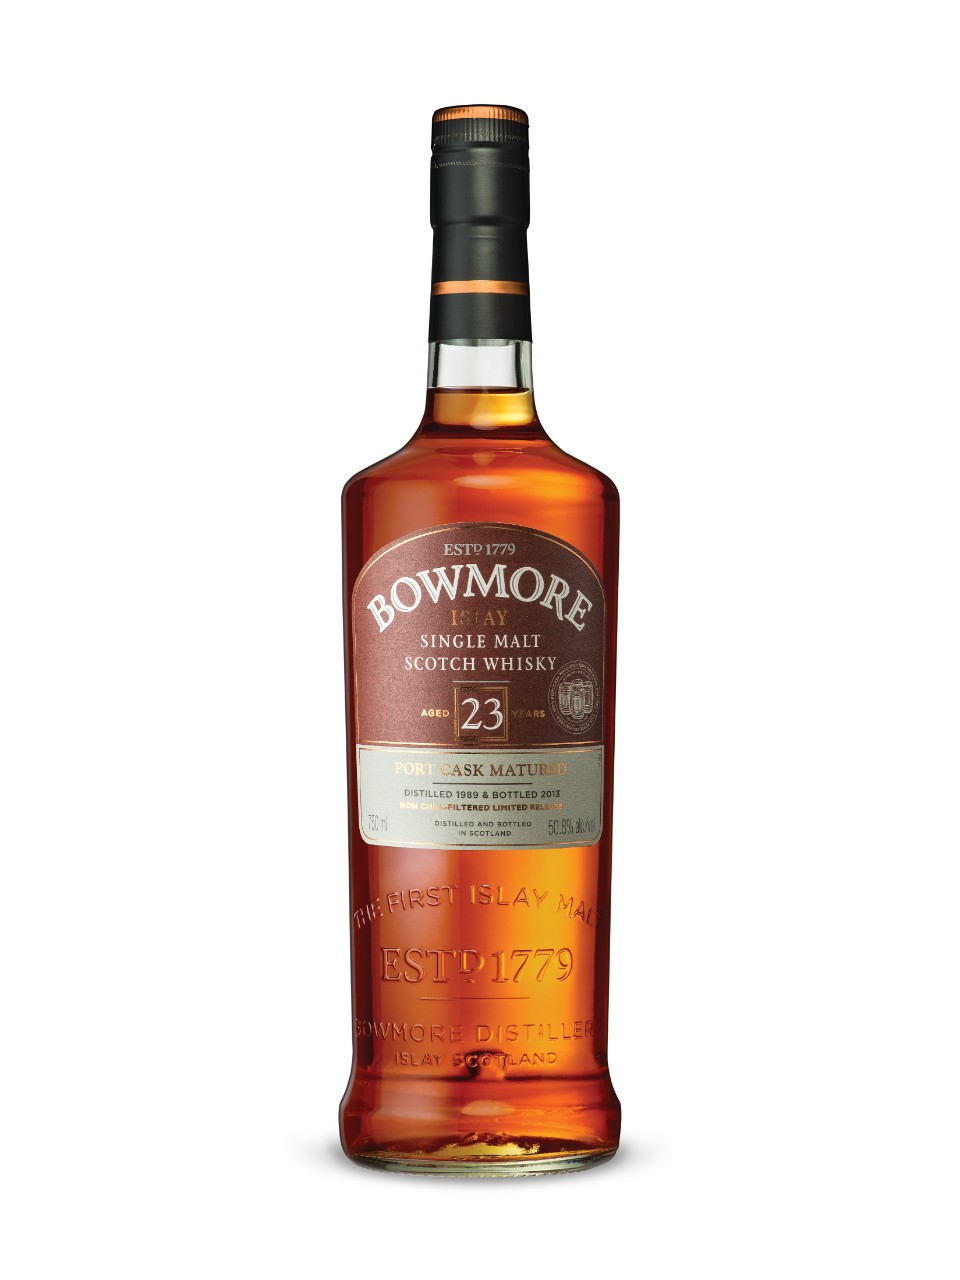 Bowmore Port Matured 23-Year-Old Islay Single Malt Scotch Whisky